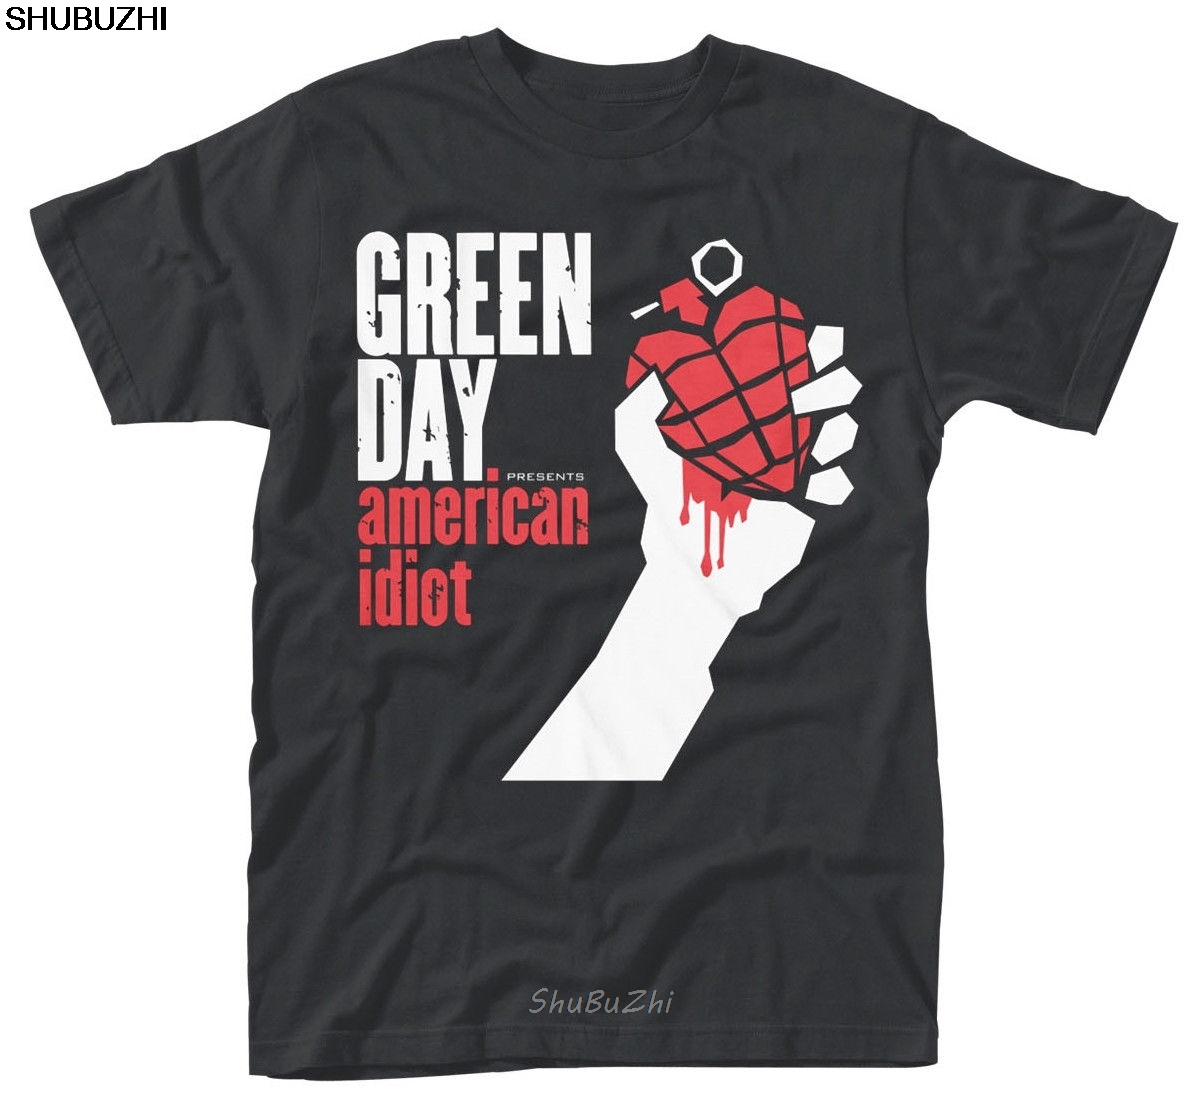 Green Day ' AMERICAN IDIOT ALBUM COVER ' T-SHIRT - Nuevo Y Oficial Men Cotton T-shirts Summer Brand Tshirt Euro Size  Sbz3330